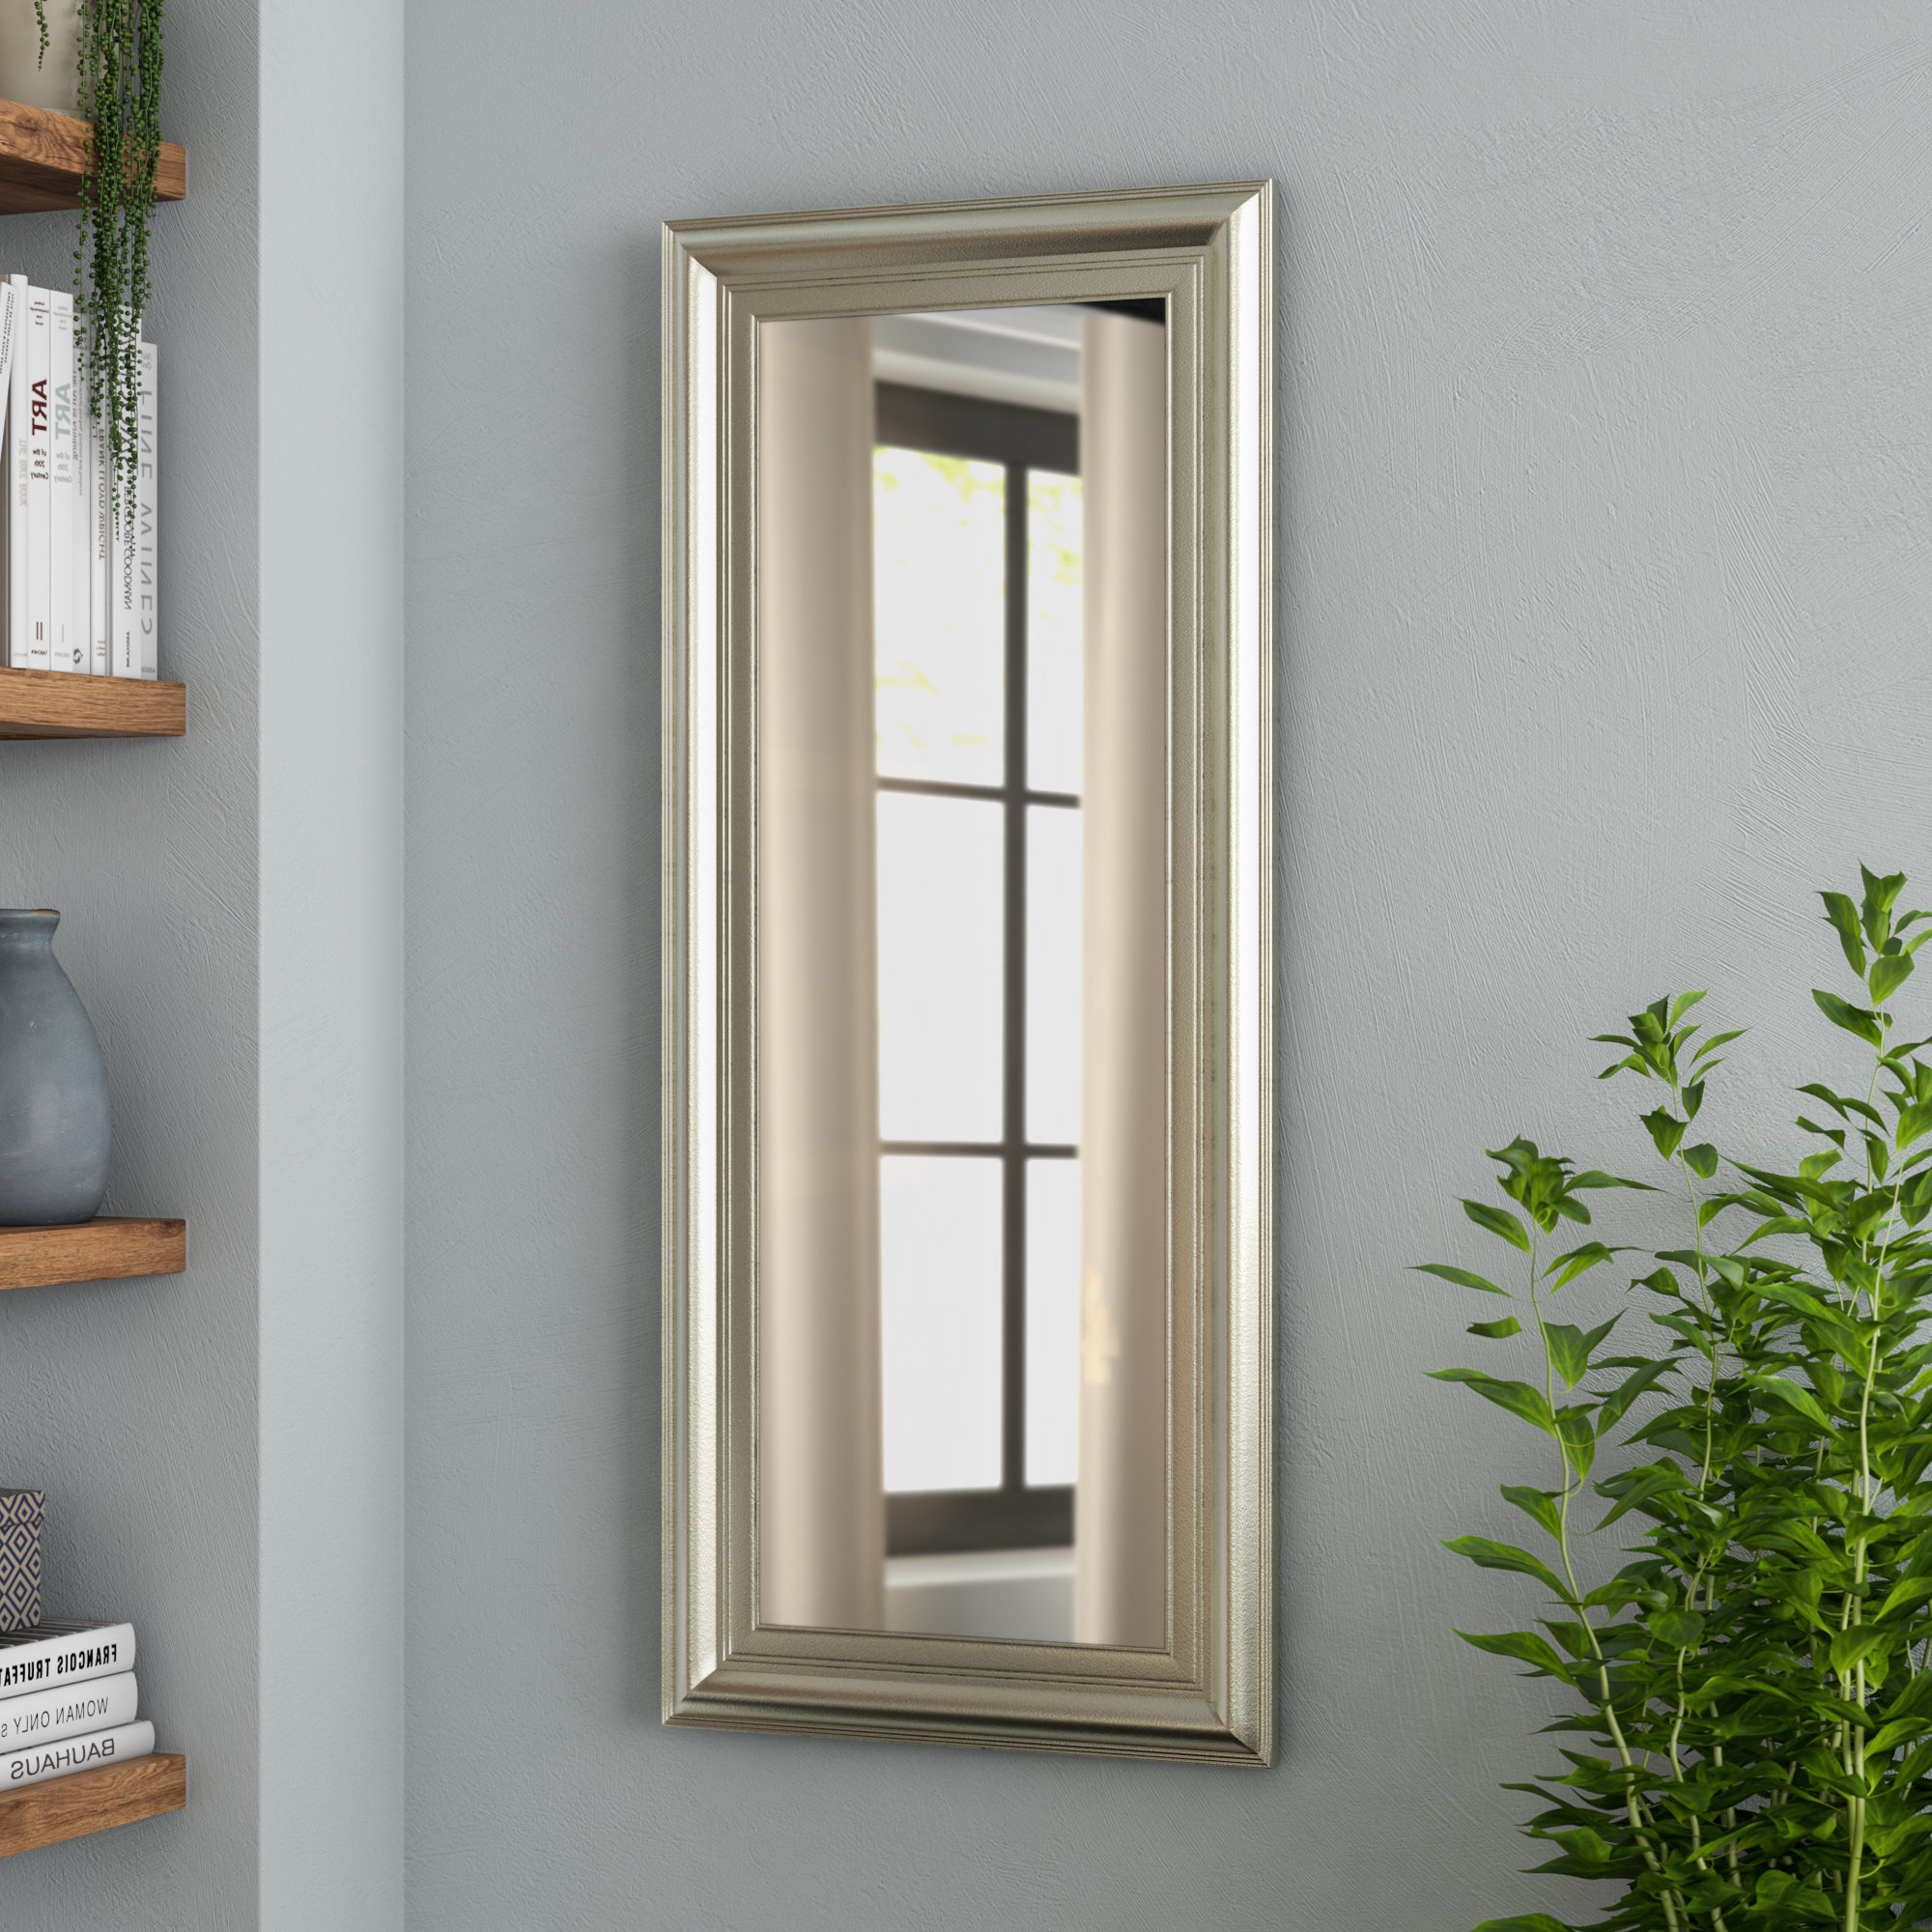 Most Recently Released Dedrick Decorative Framed Modern And Contemporary Wall Mirror Regarding Dedrick Decorative Framed Modern And Contemporary Wall Mirrors (View 15 of 20)